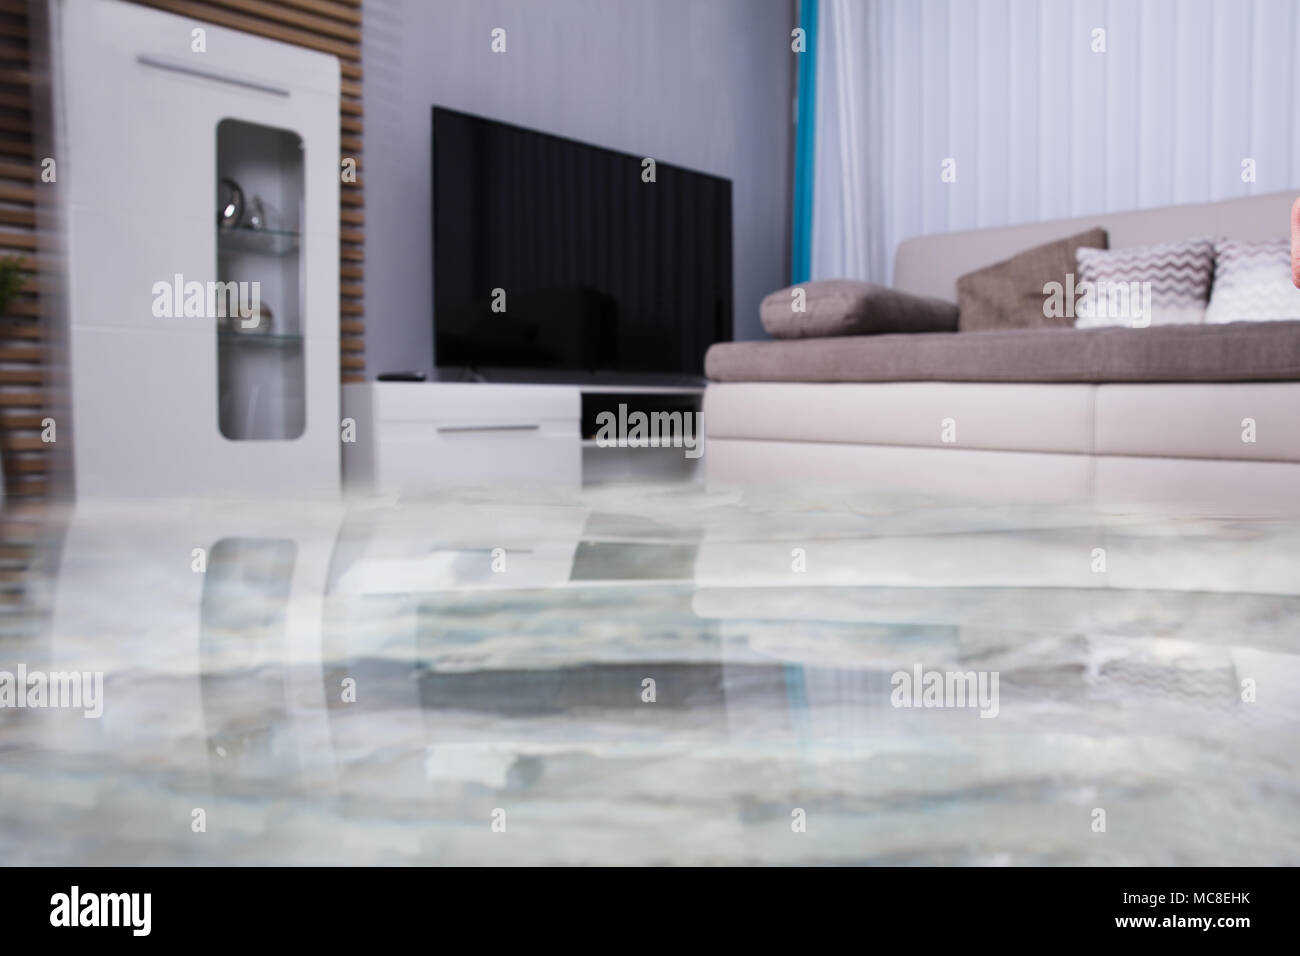 Flooded Room Stock Photos & Flooded Room Stock Images - Alamy